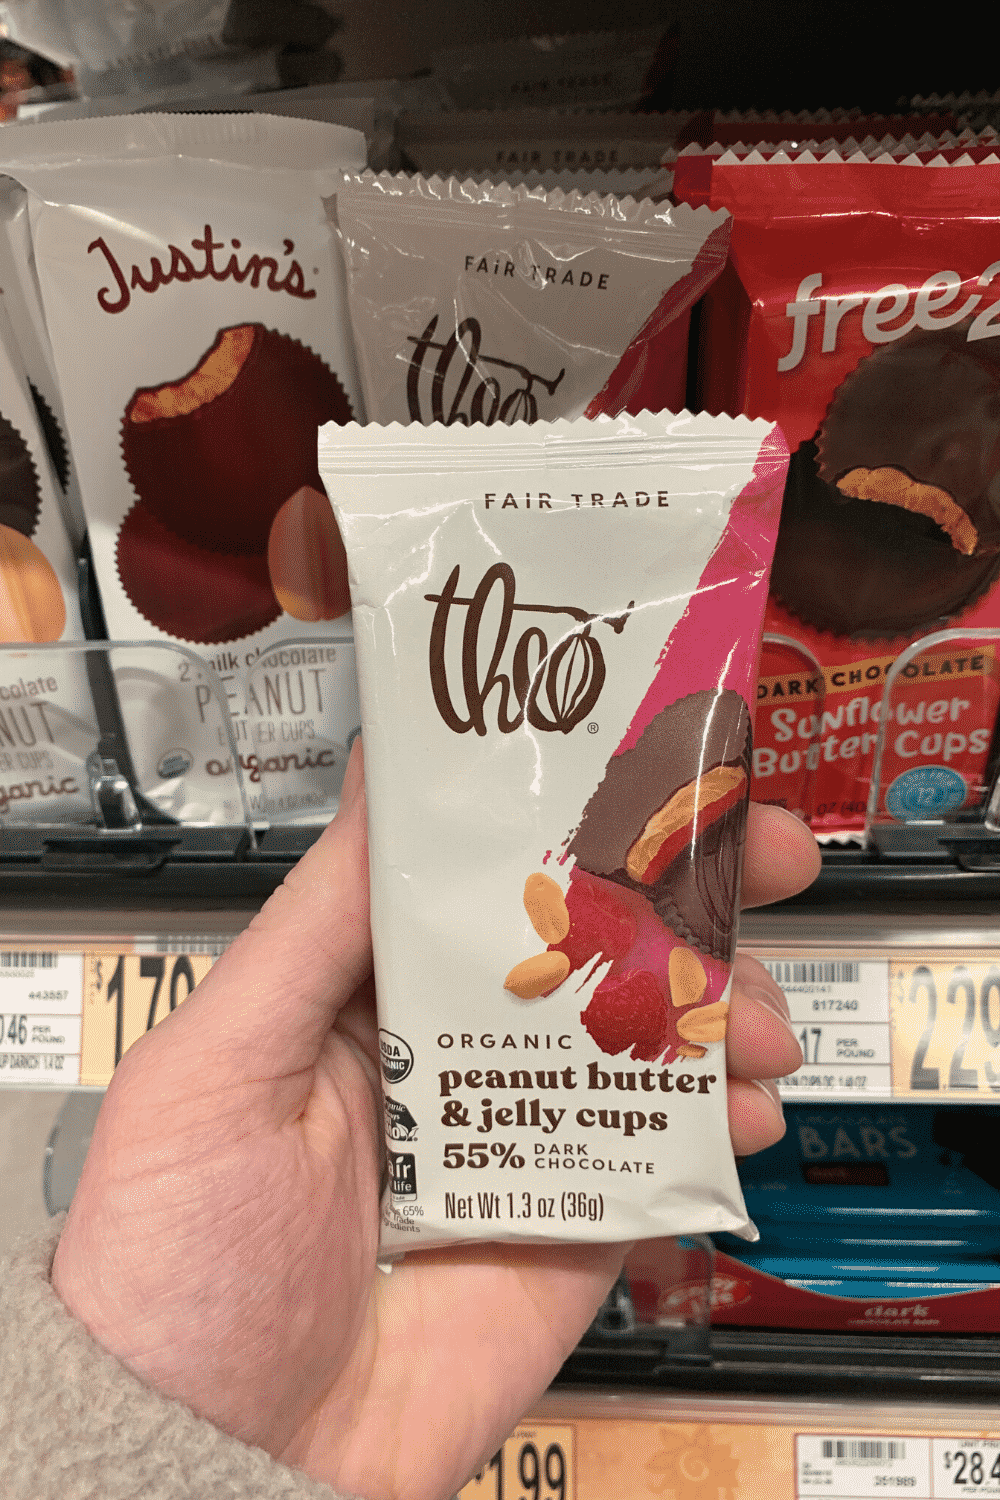 A hand holding a package of Theo peanut butter and jelly cups